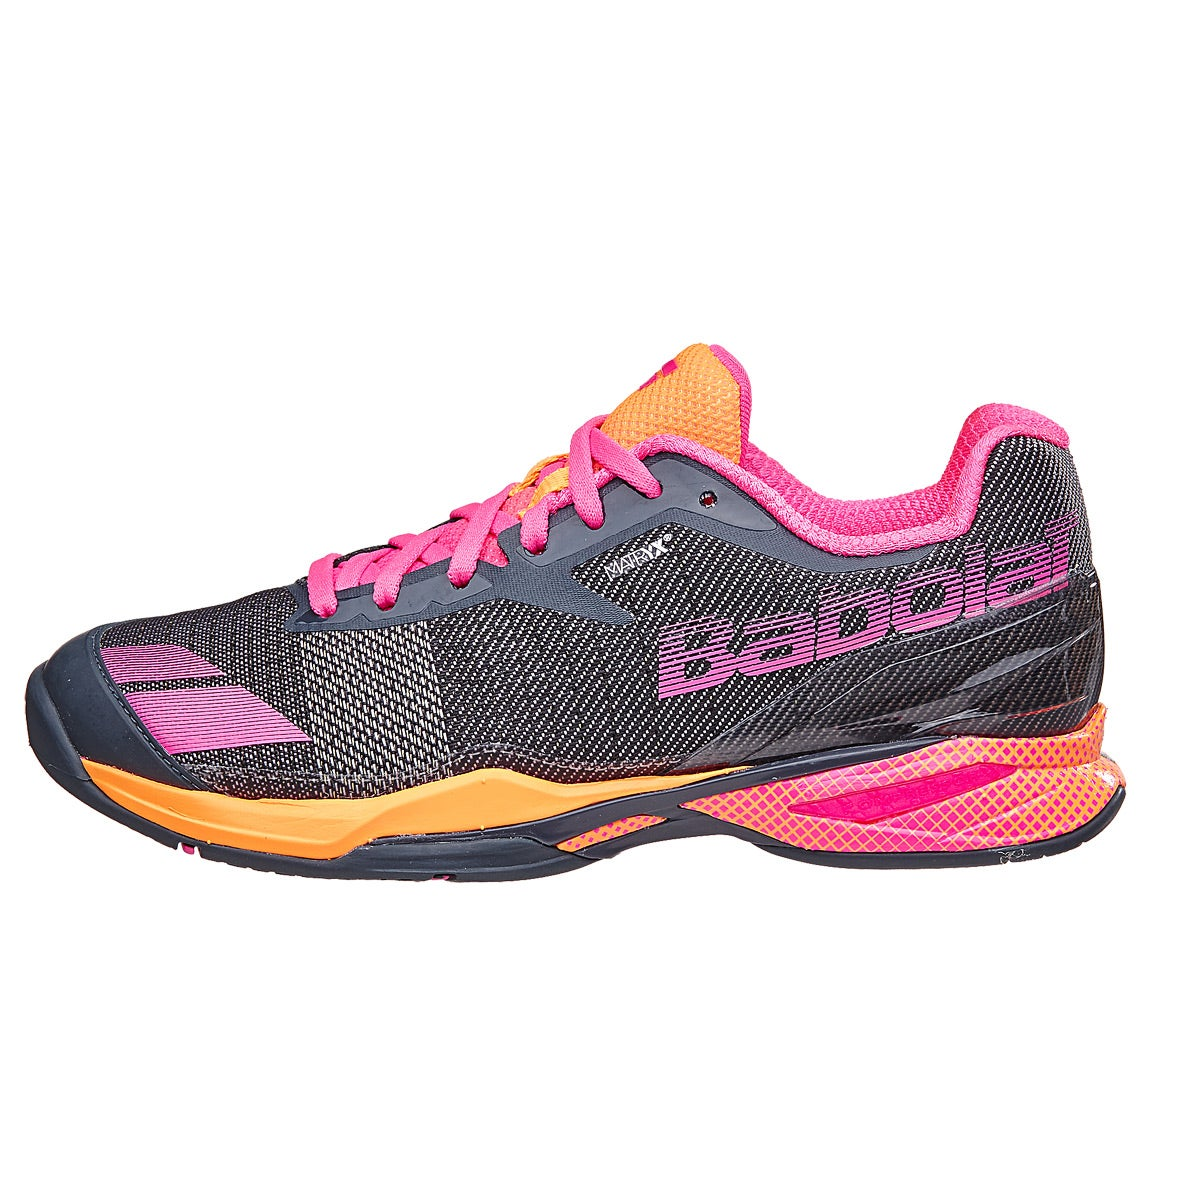 Babolat Tennis Shoes >> Babolat Jet AC Grey/Orange/Pink Women's Shoes 360° View